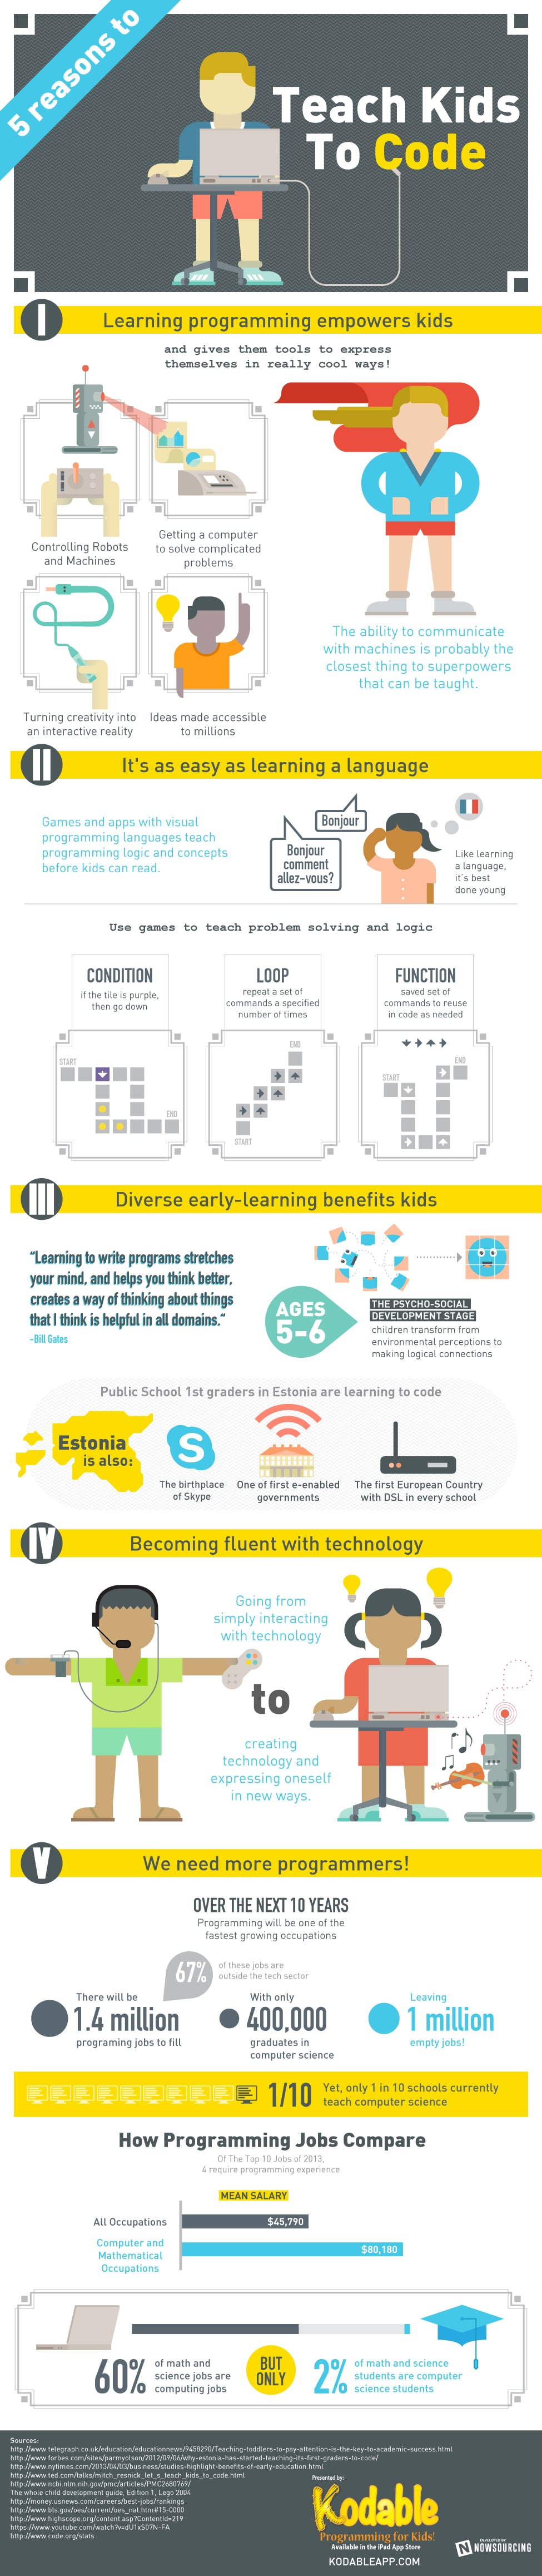 5 Reasons Why It's A Good Idea To Teach Kids How To Code [Infographic]